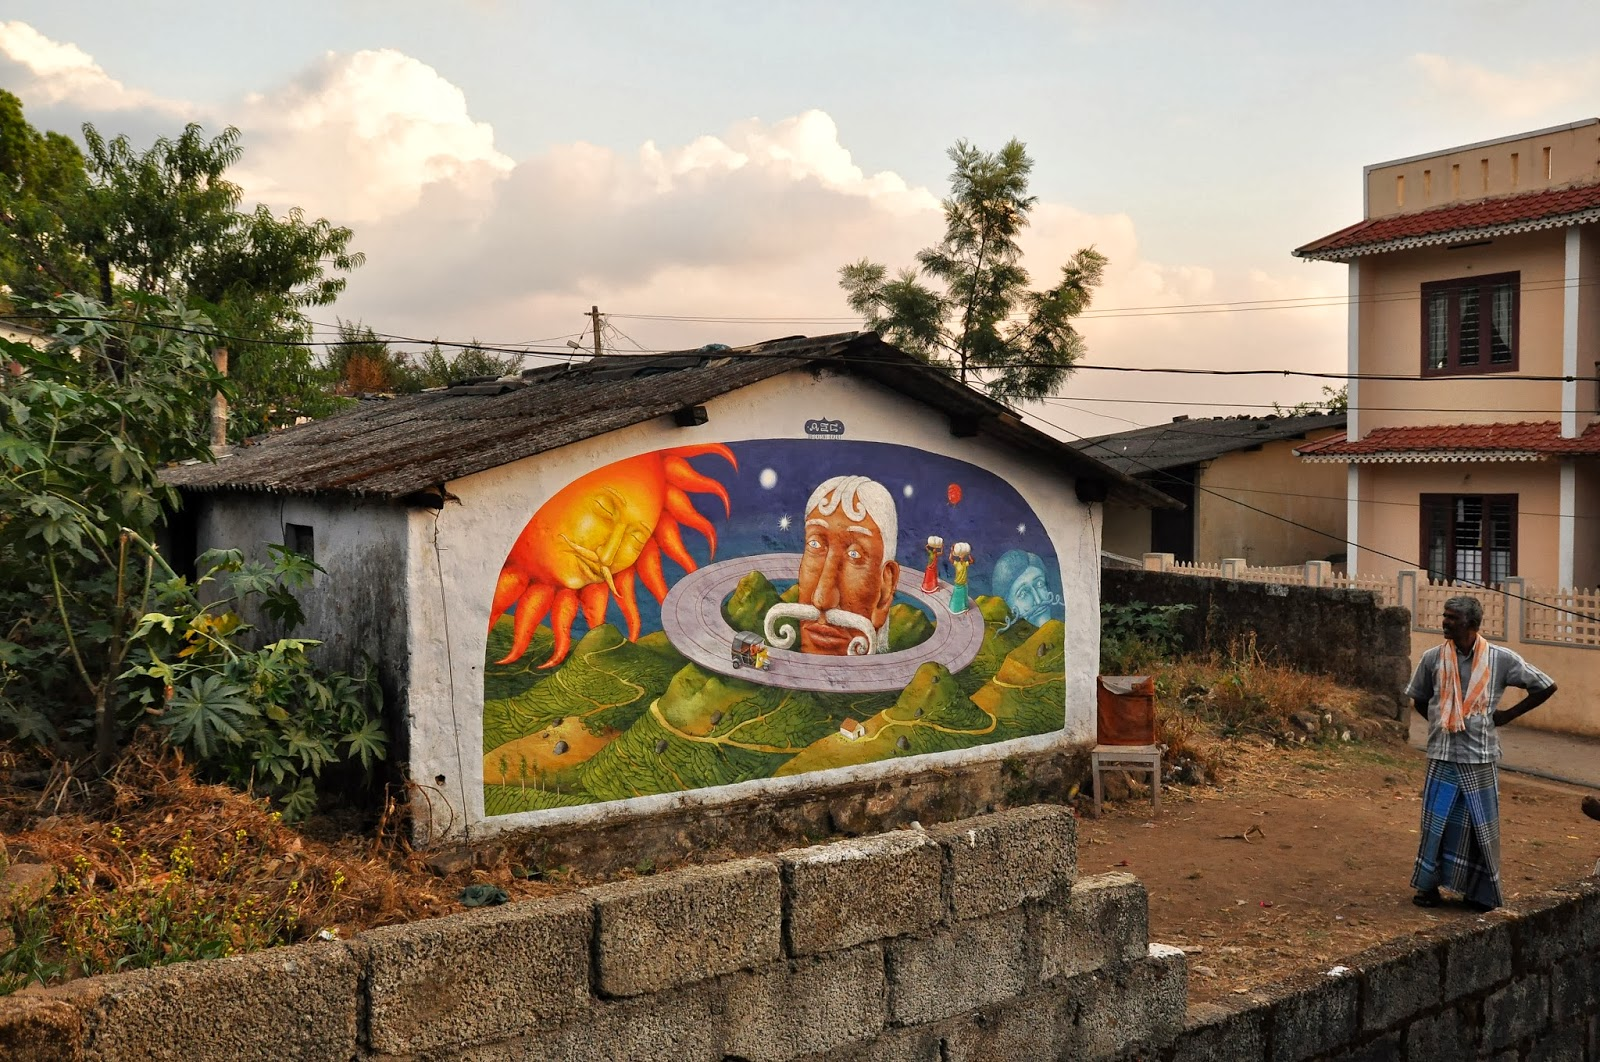 interesni-kazki-visit-of-saturn-new-mural-in-india-14